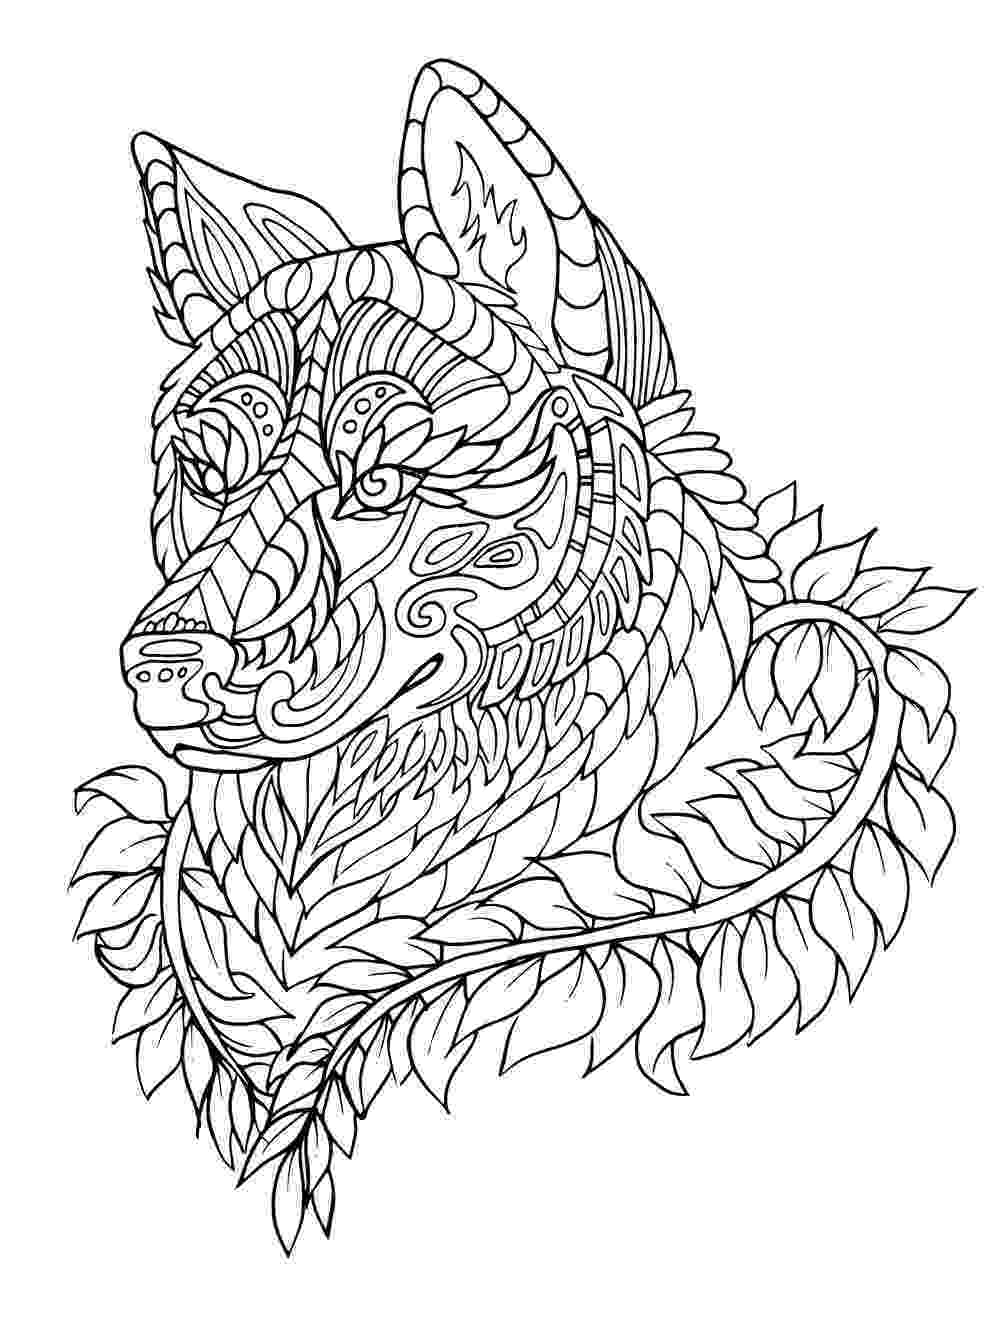 stress relieving coloring book stress relieving coloring pages printable at getcolorings stress coloring relieving book